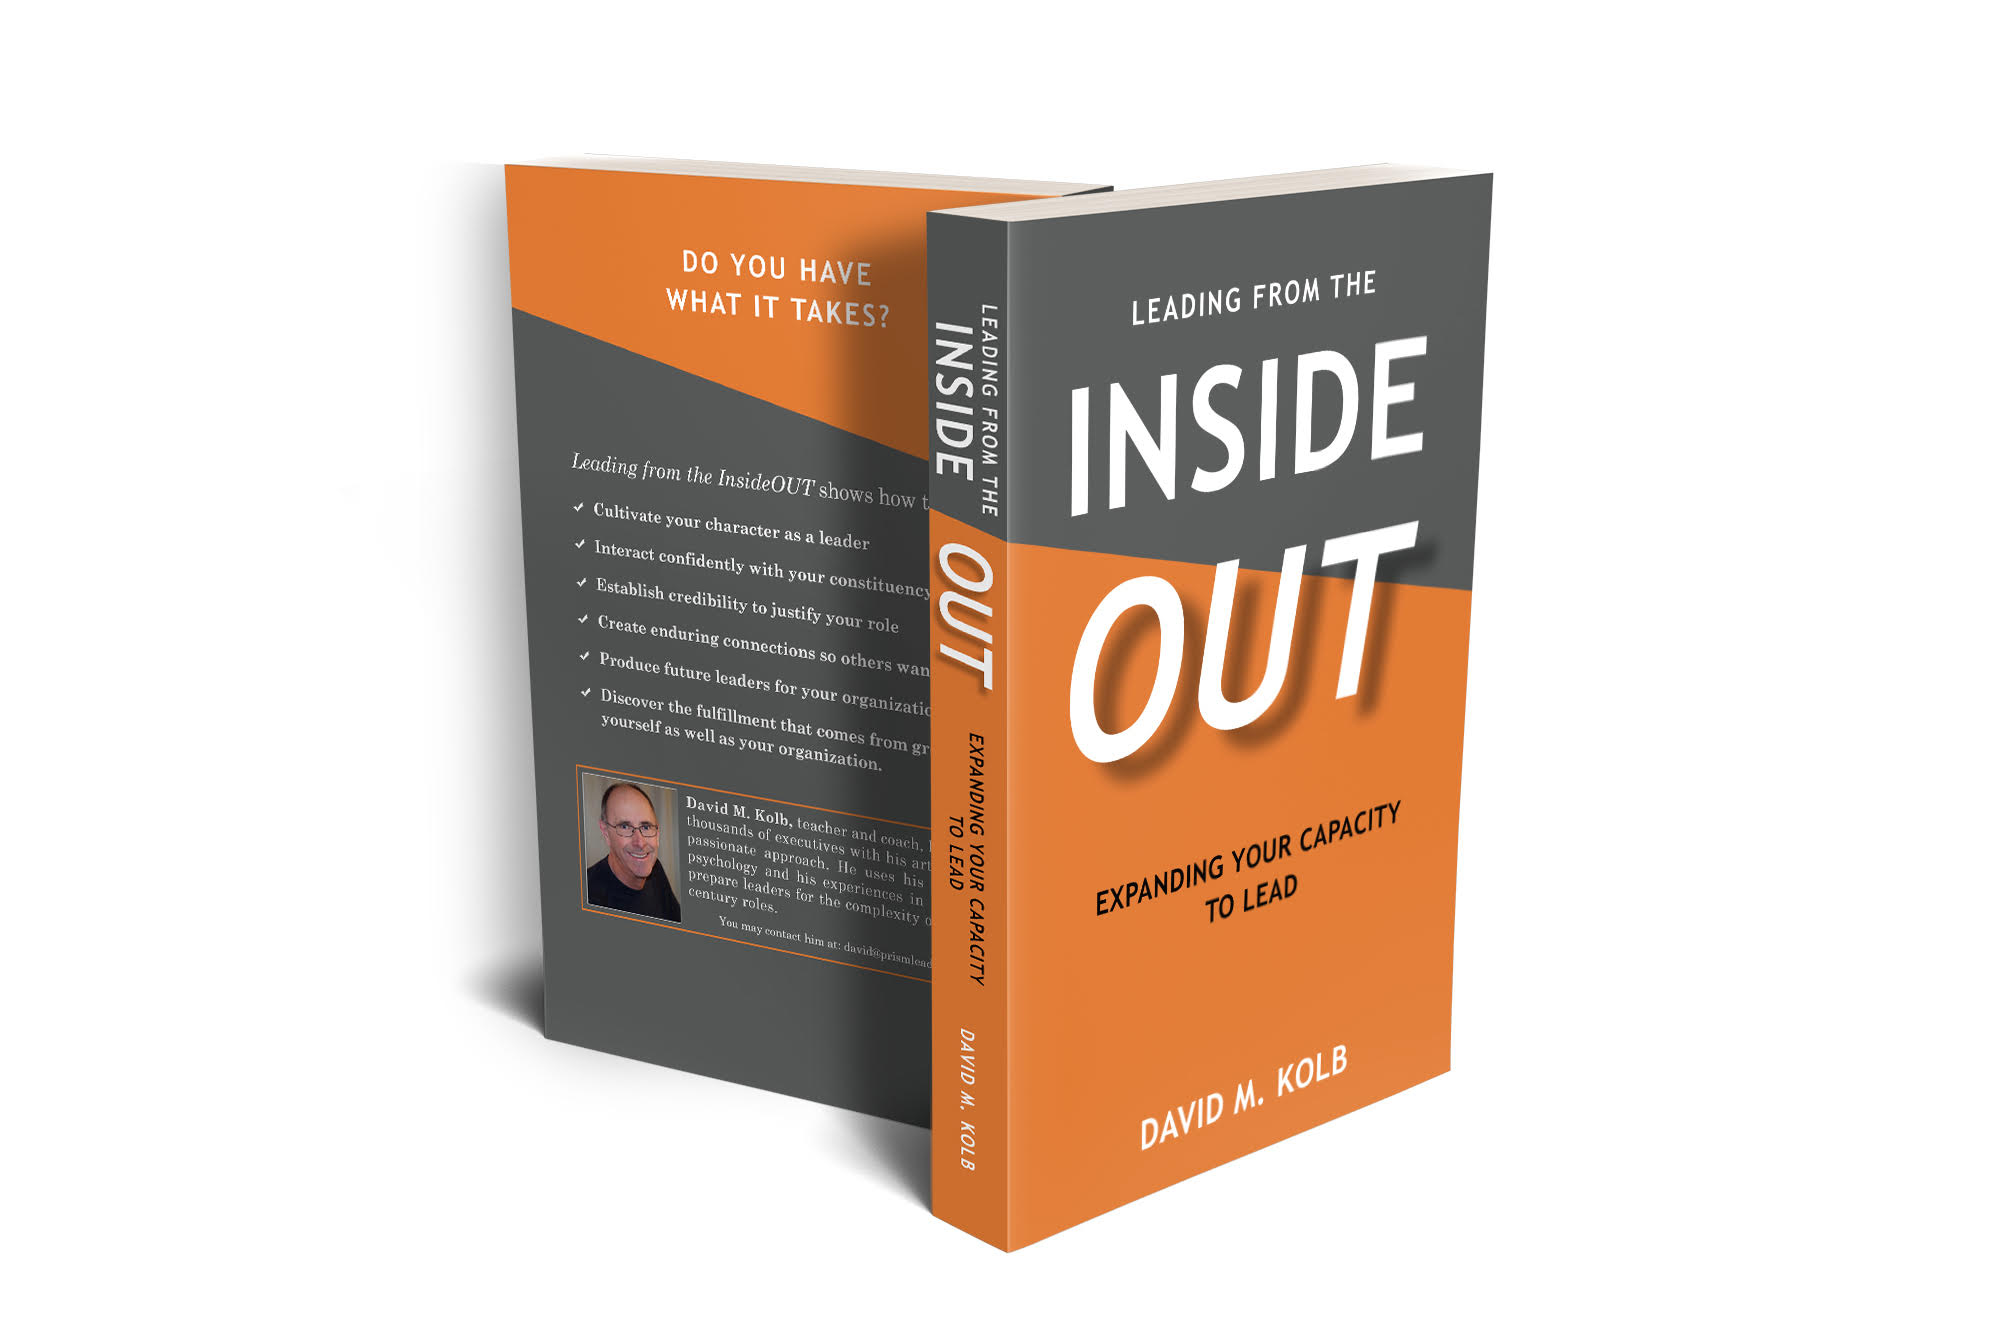 - 100% of the profits of David M. Kolb's book Leading from the Inside Out are donated to WYSE International. Click here for more information and to purchase a copy of the book.